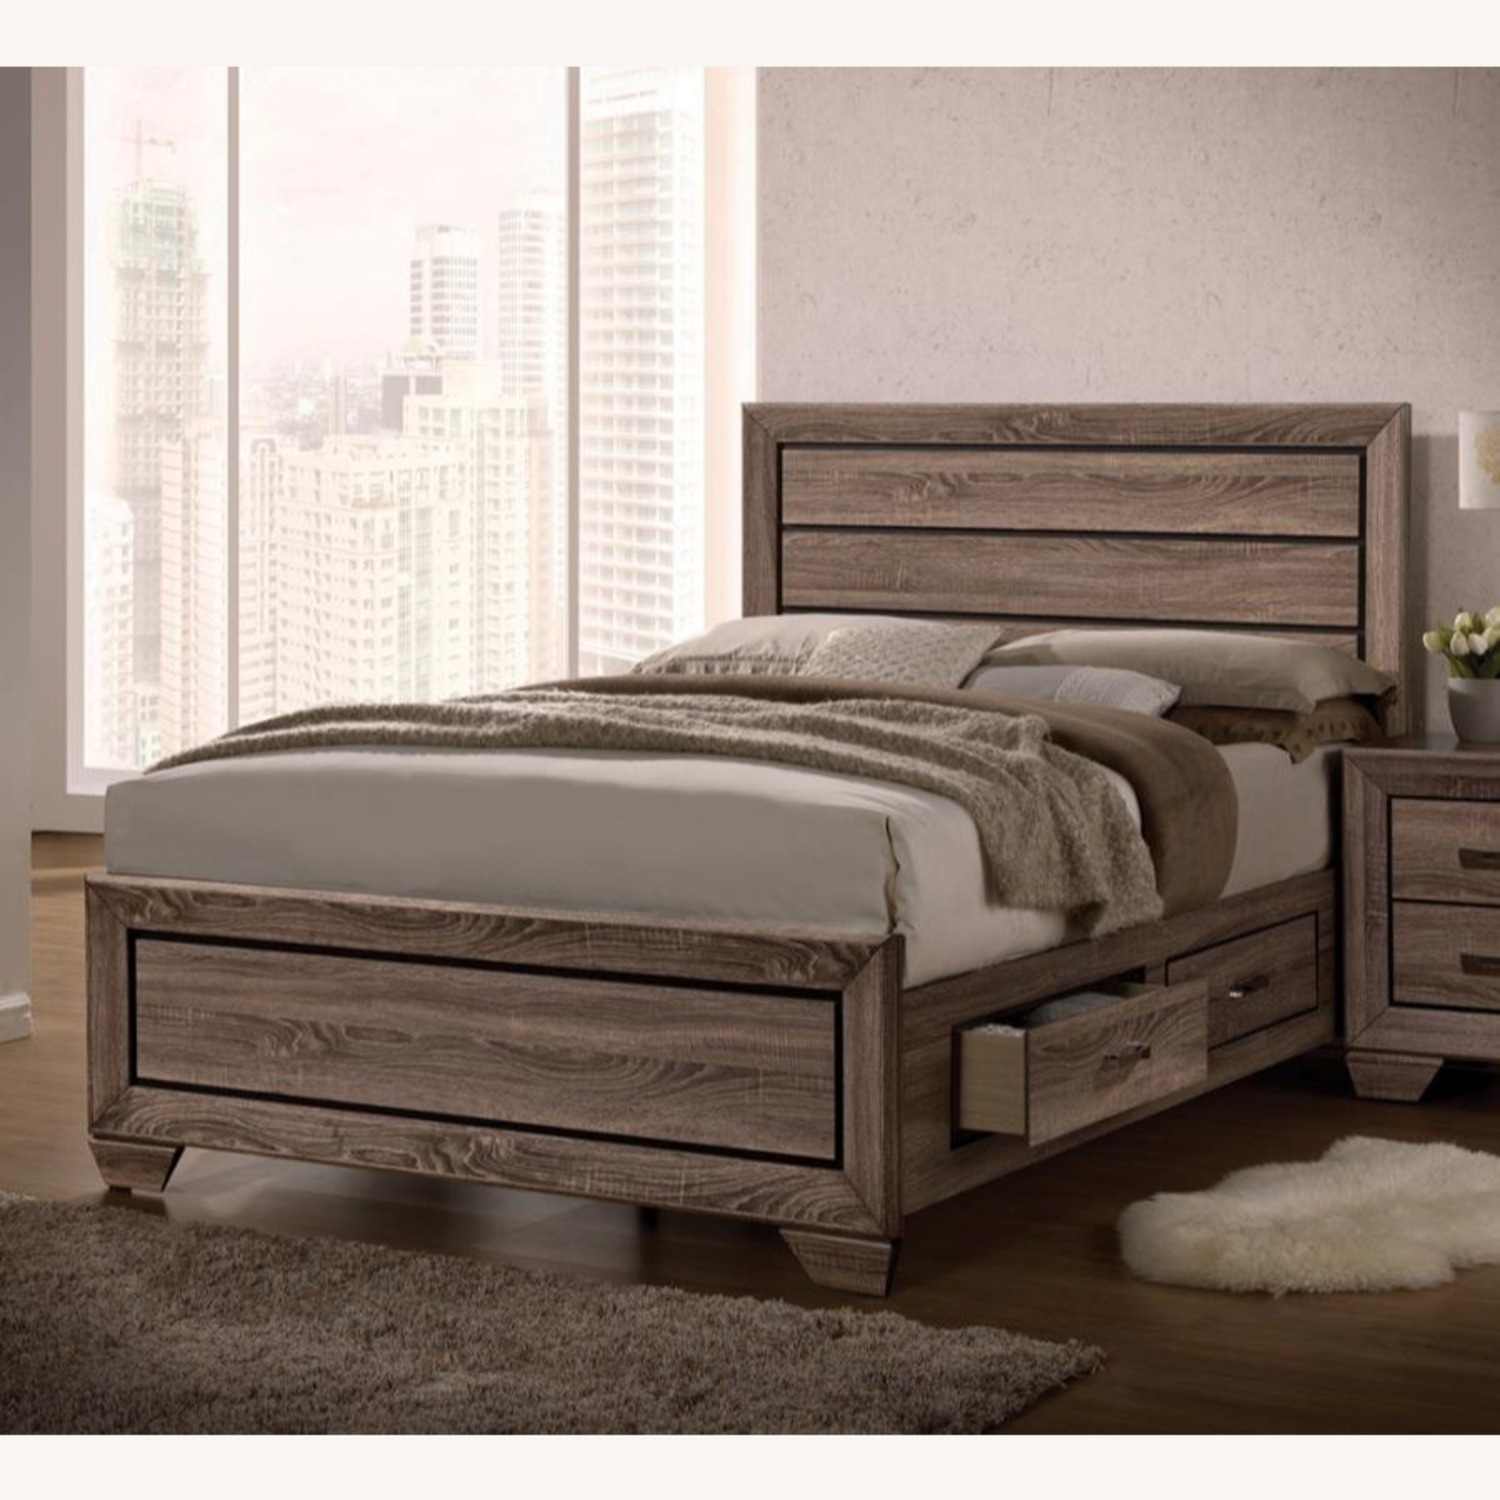 Storage King Bed In Washed Taupe Wood Finish - image-0